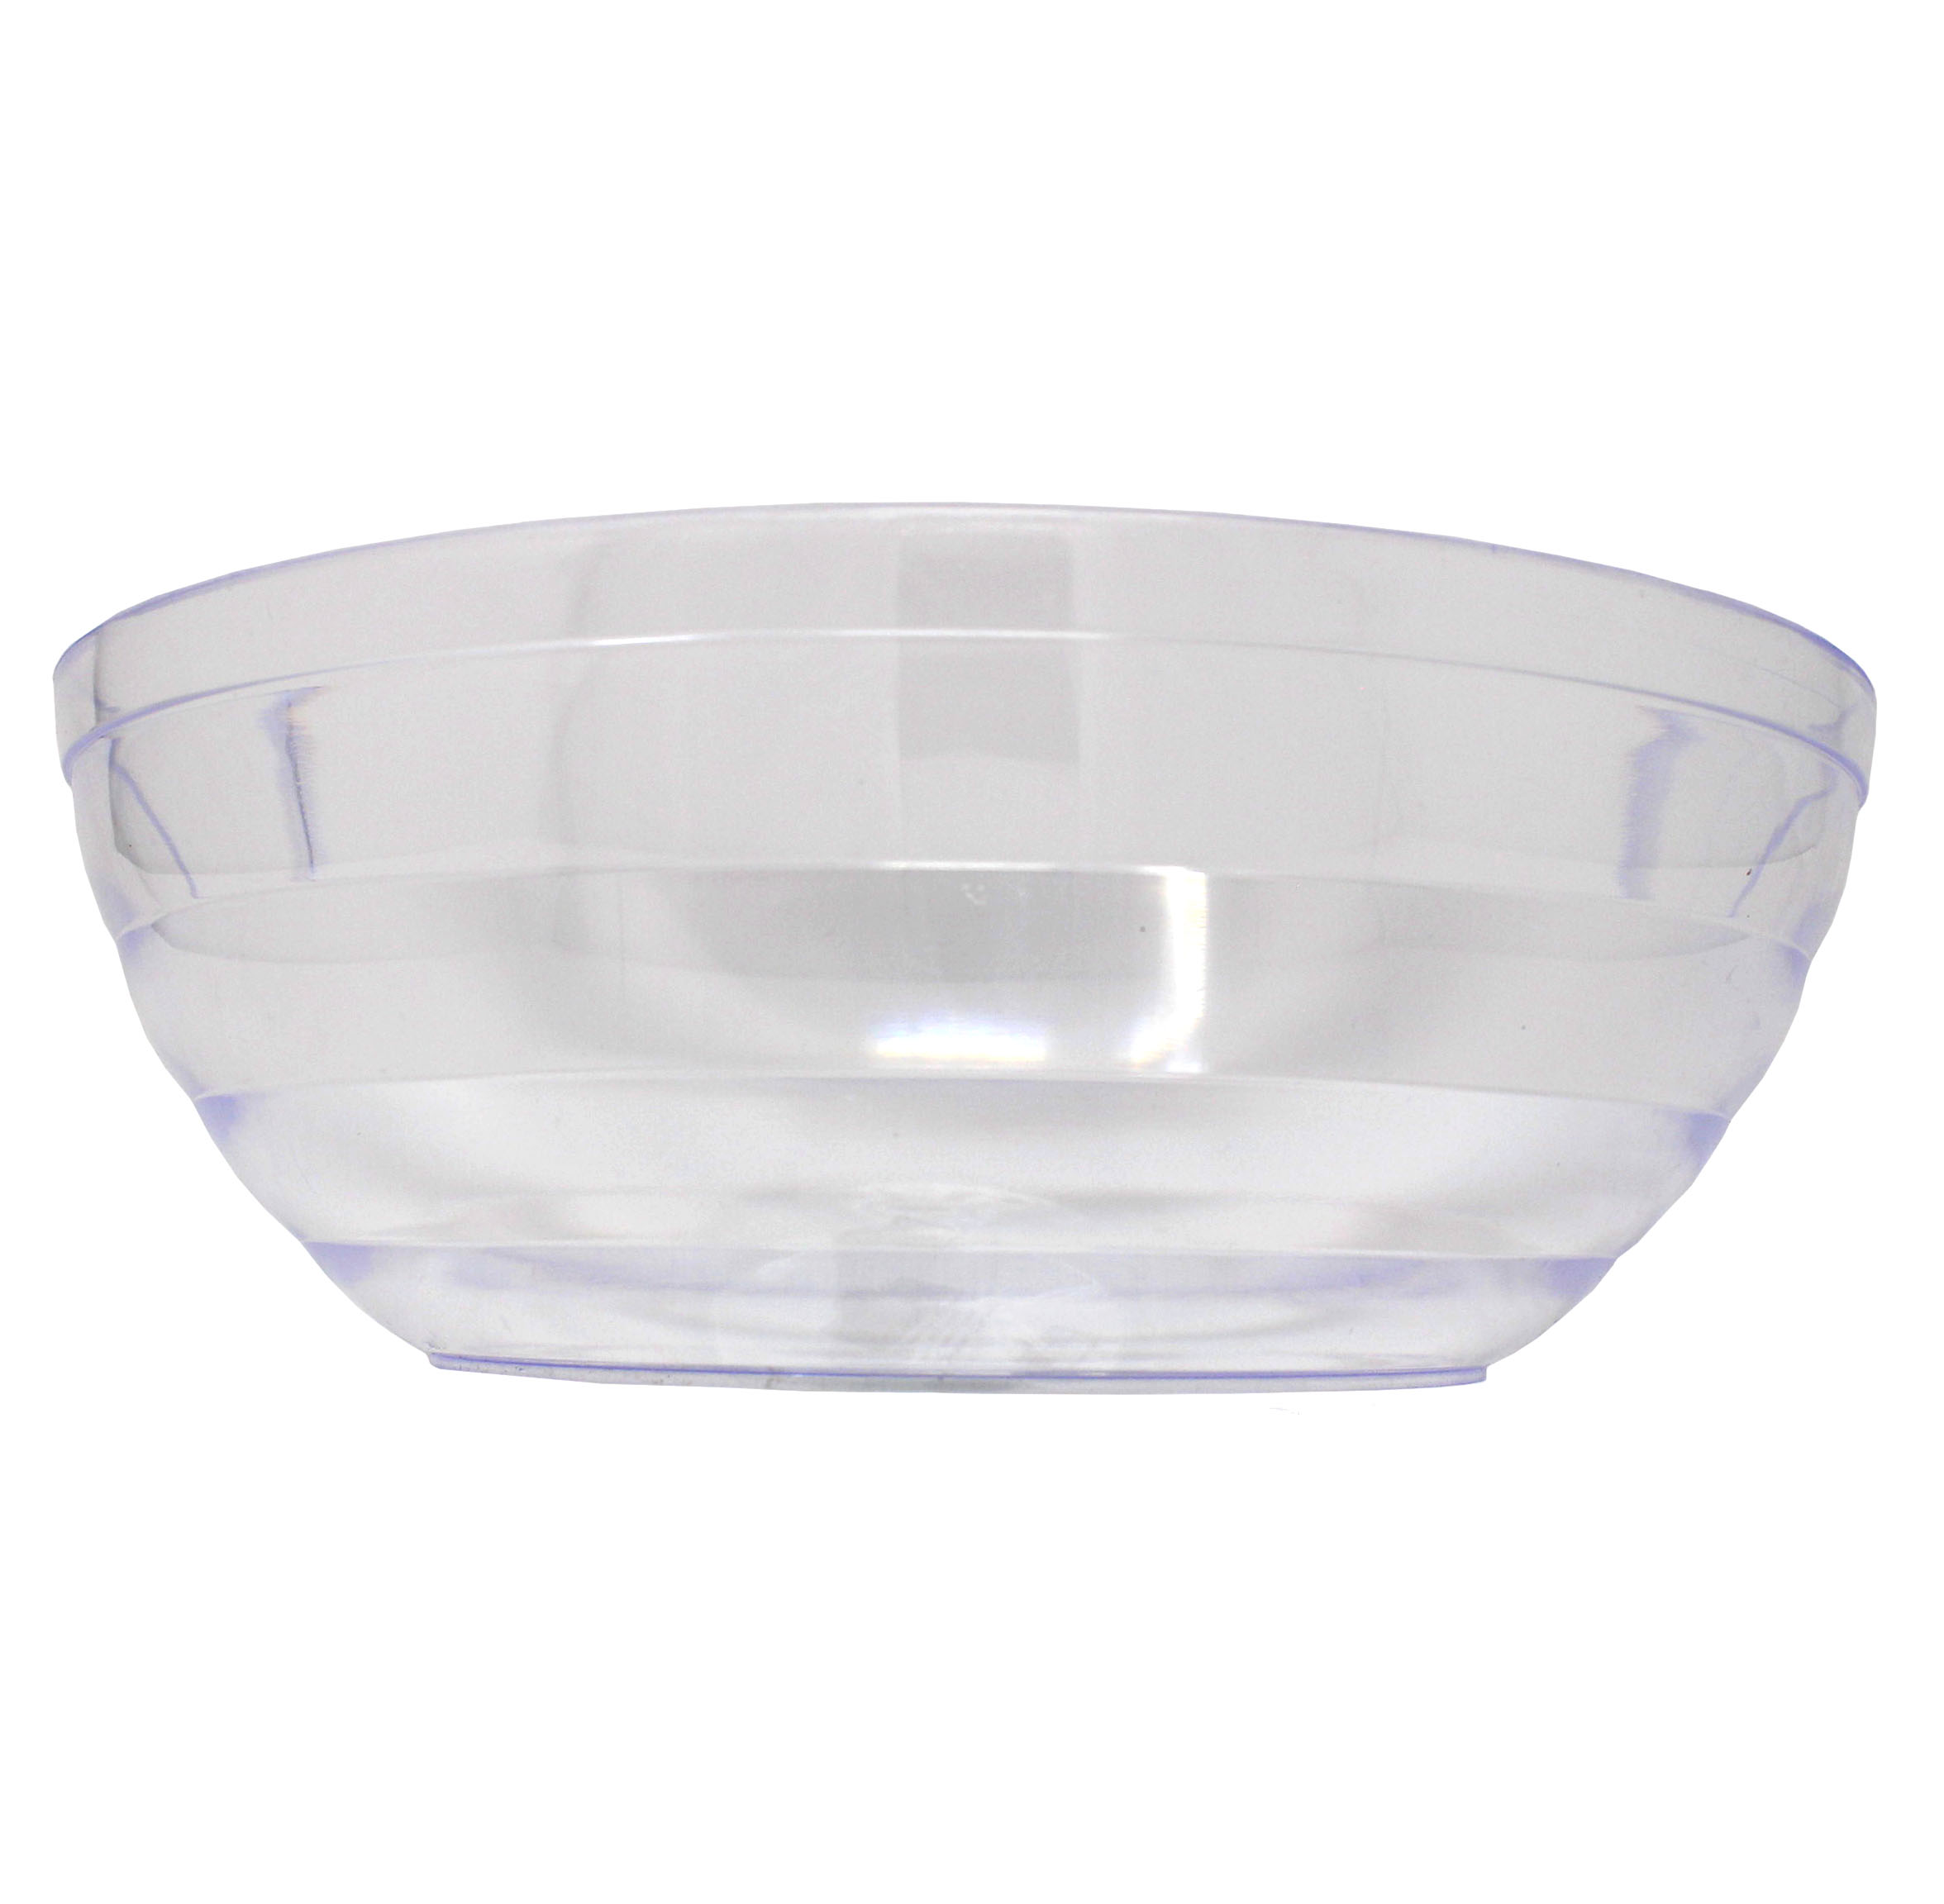 Bowl Ringed Plastic 5qt